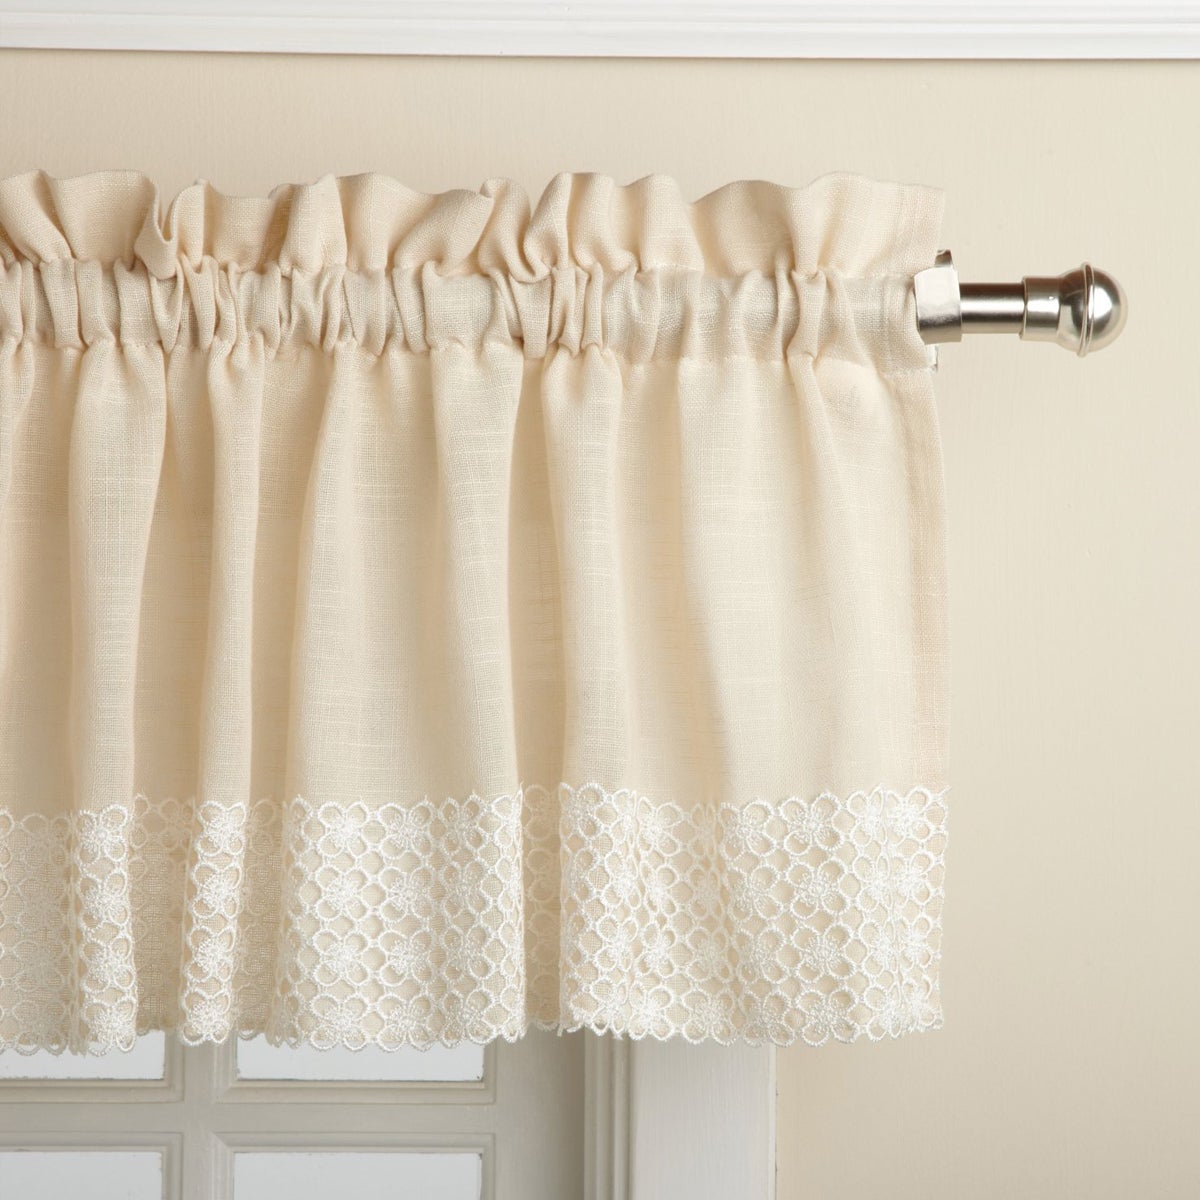 French Vanilla Country Style Curtain Parts With White Daisy Lace Accent Tier, Swag And Valance Options With French Vanilla Country Style Curtain Parts With White Daisy Lace Accent (View 3 of 20)